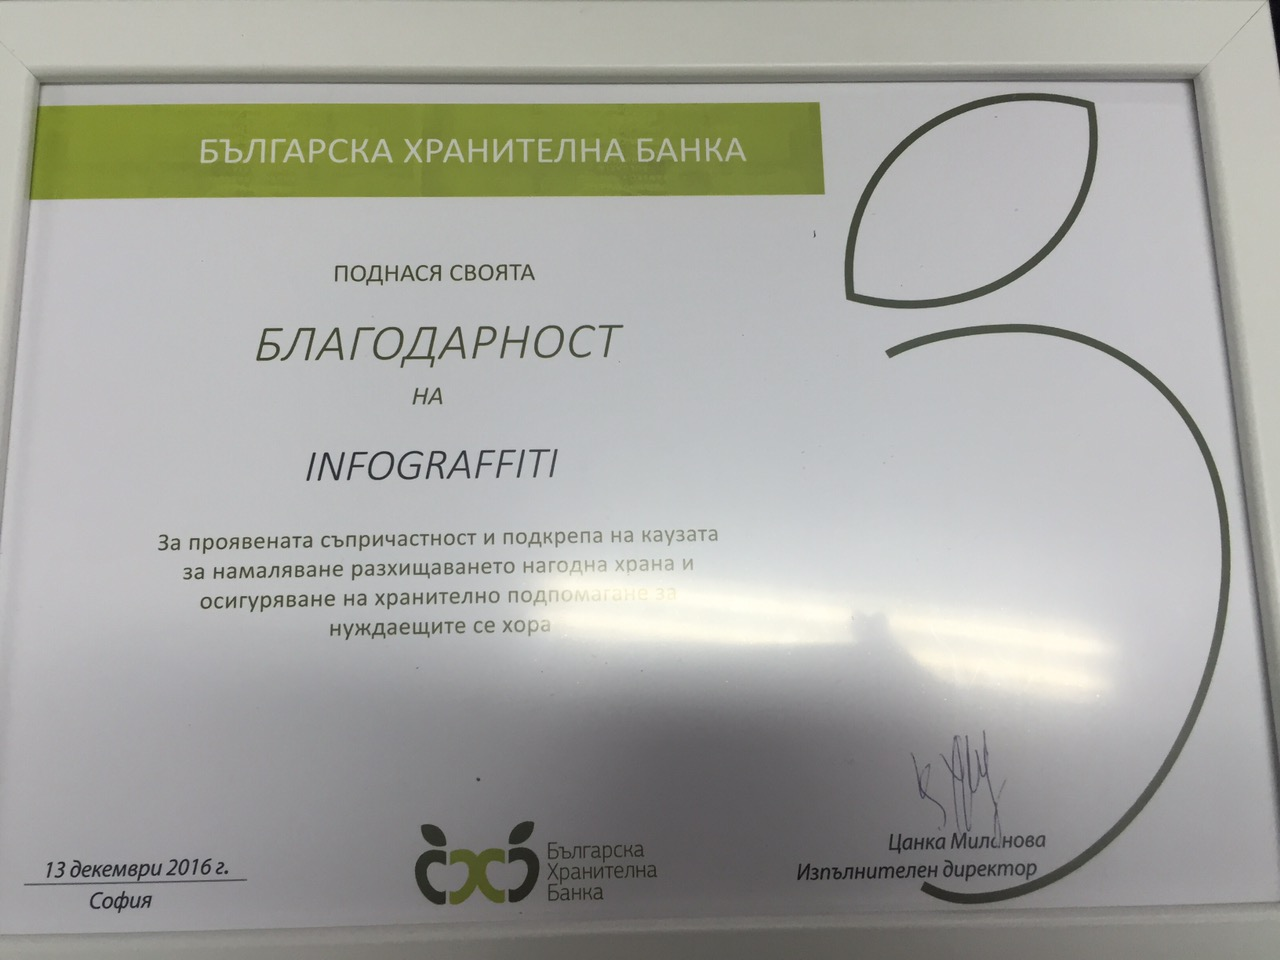 Bulgarian Food Bank expresses its gratitude to Infograffiti for the support